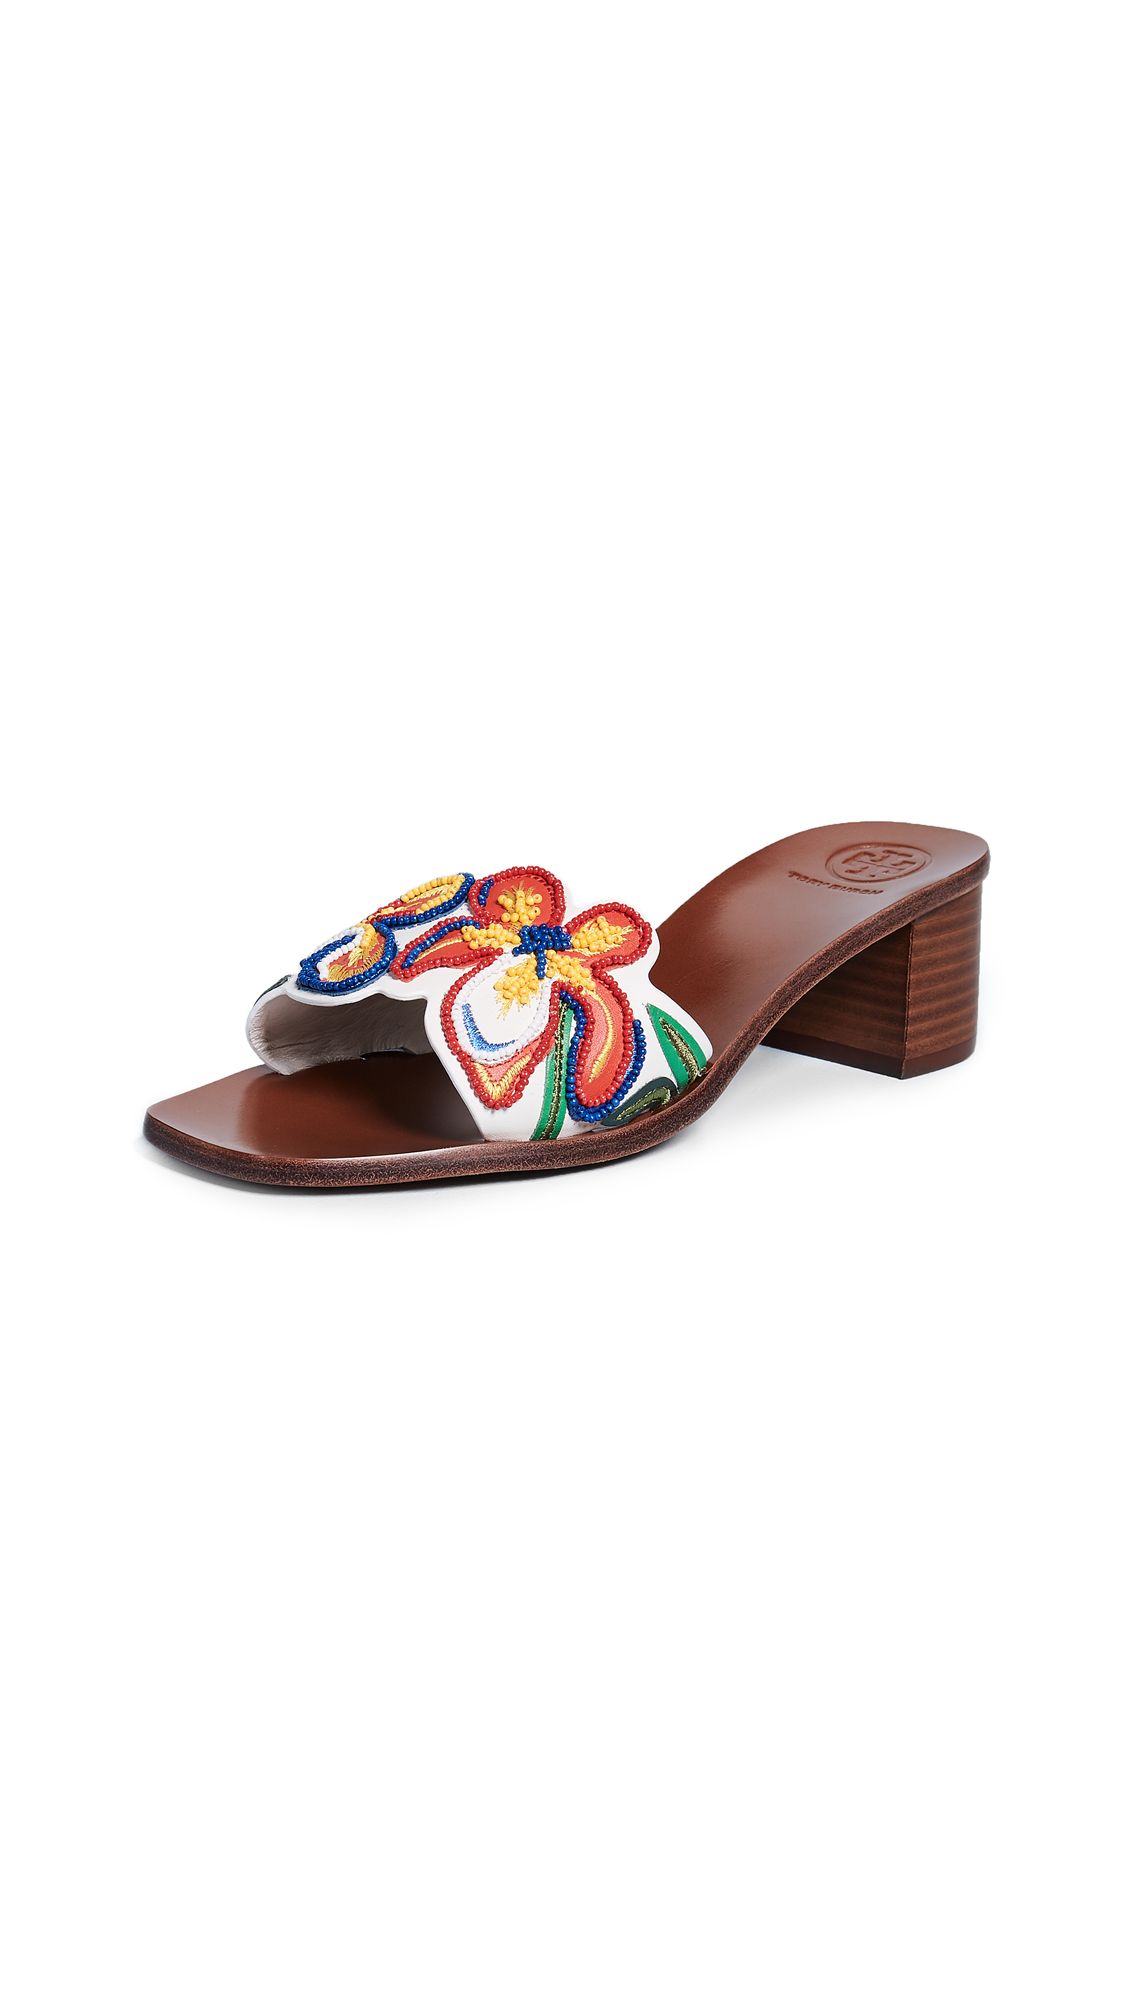 Tory Burch Bianca 45mm Slides - Perfect Ivory/Multi